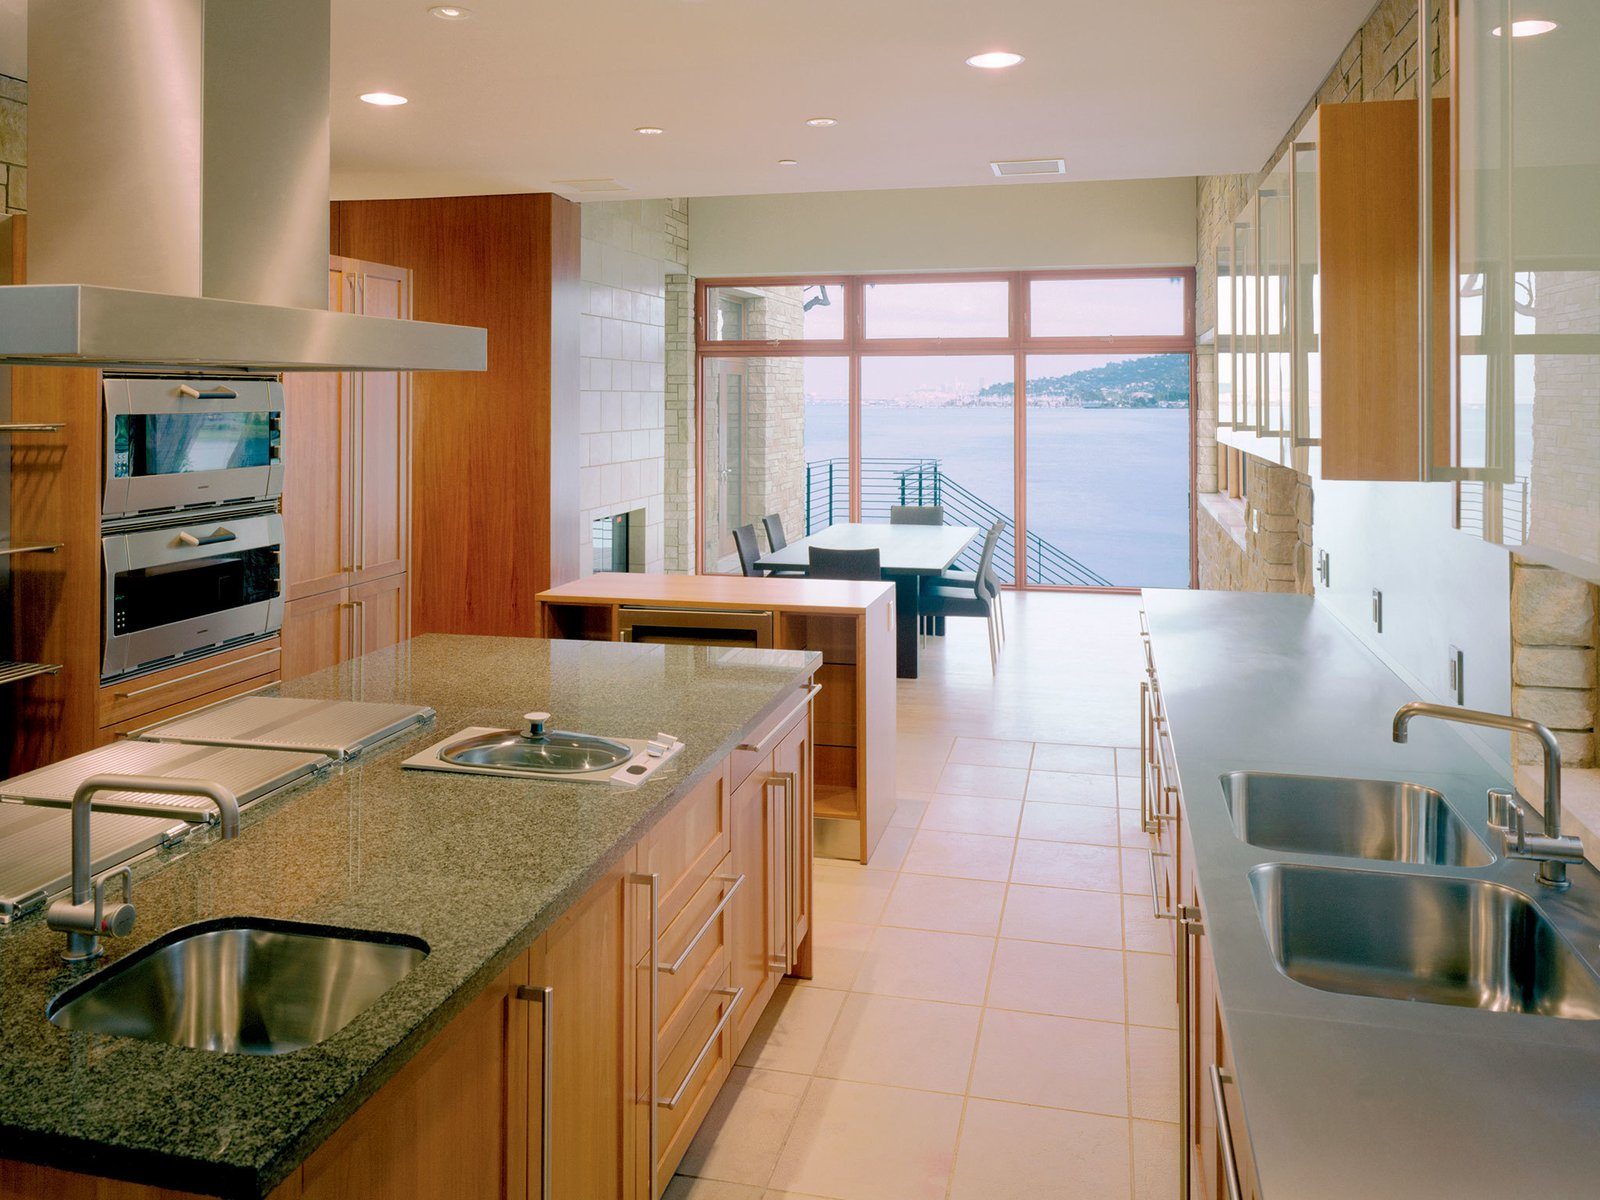 Craftsman homes for american dream builders fans zillow blog -  Ca Edgewood House Mill Valley